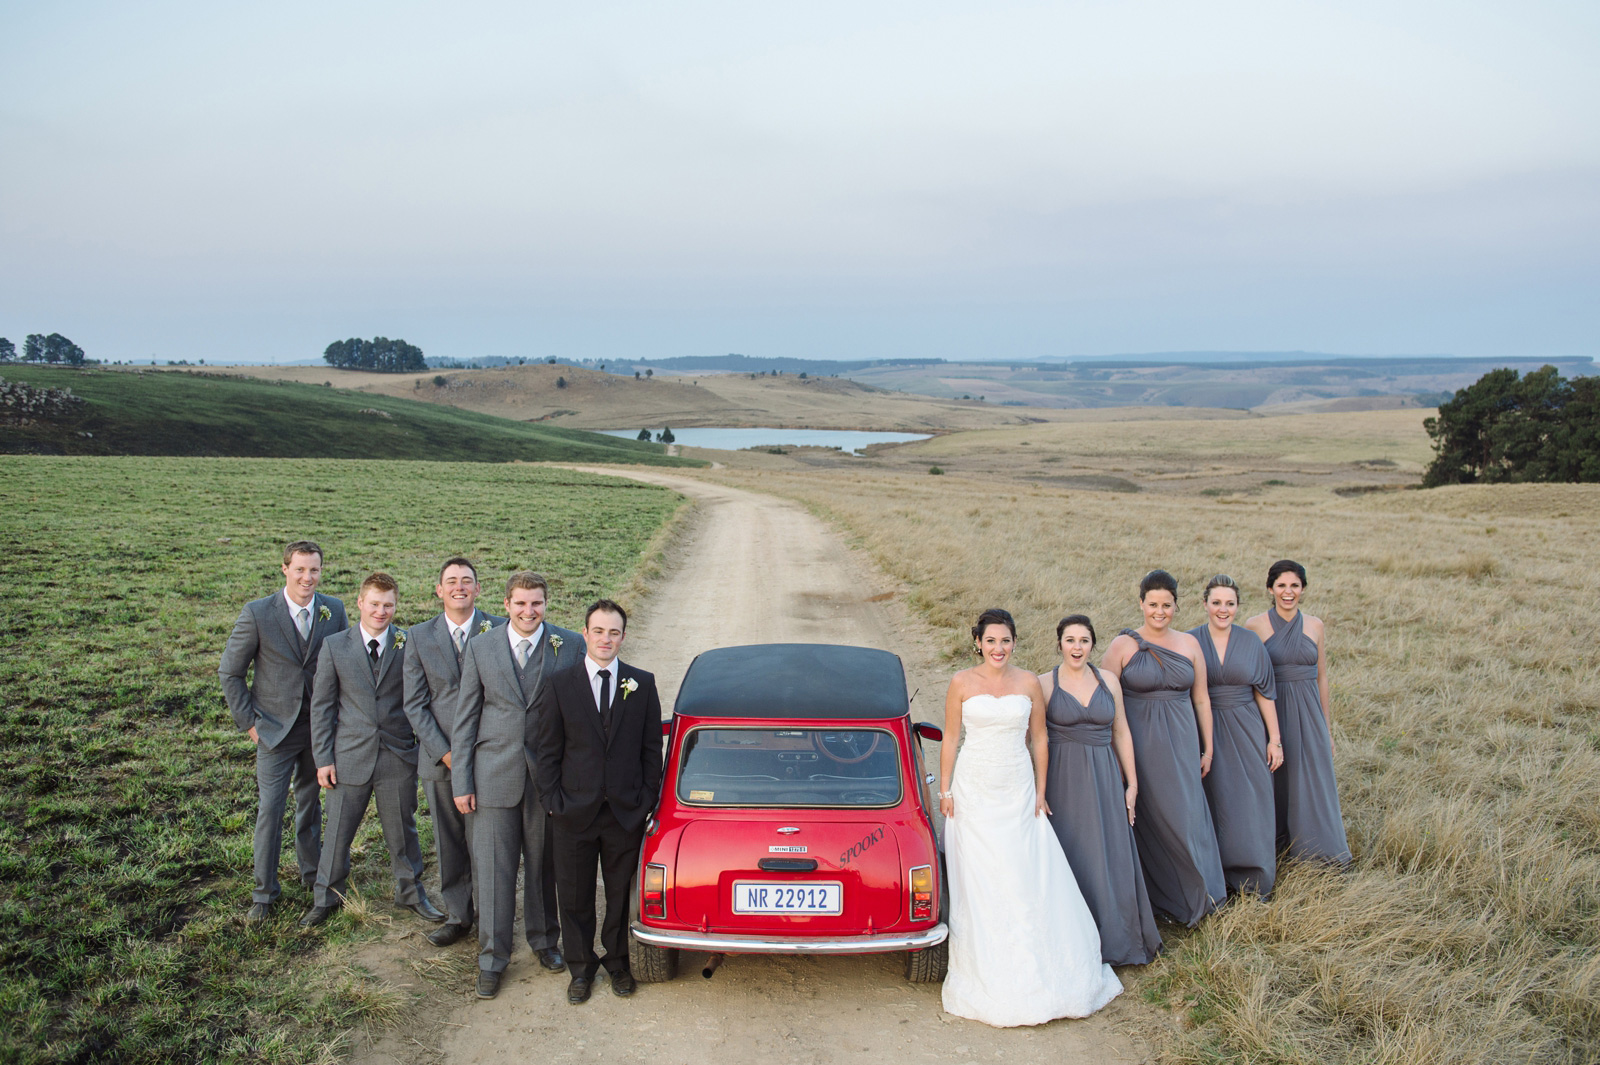 bridal party on a road with a car